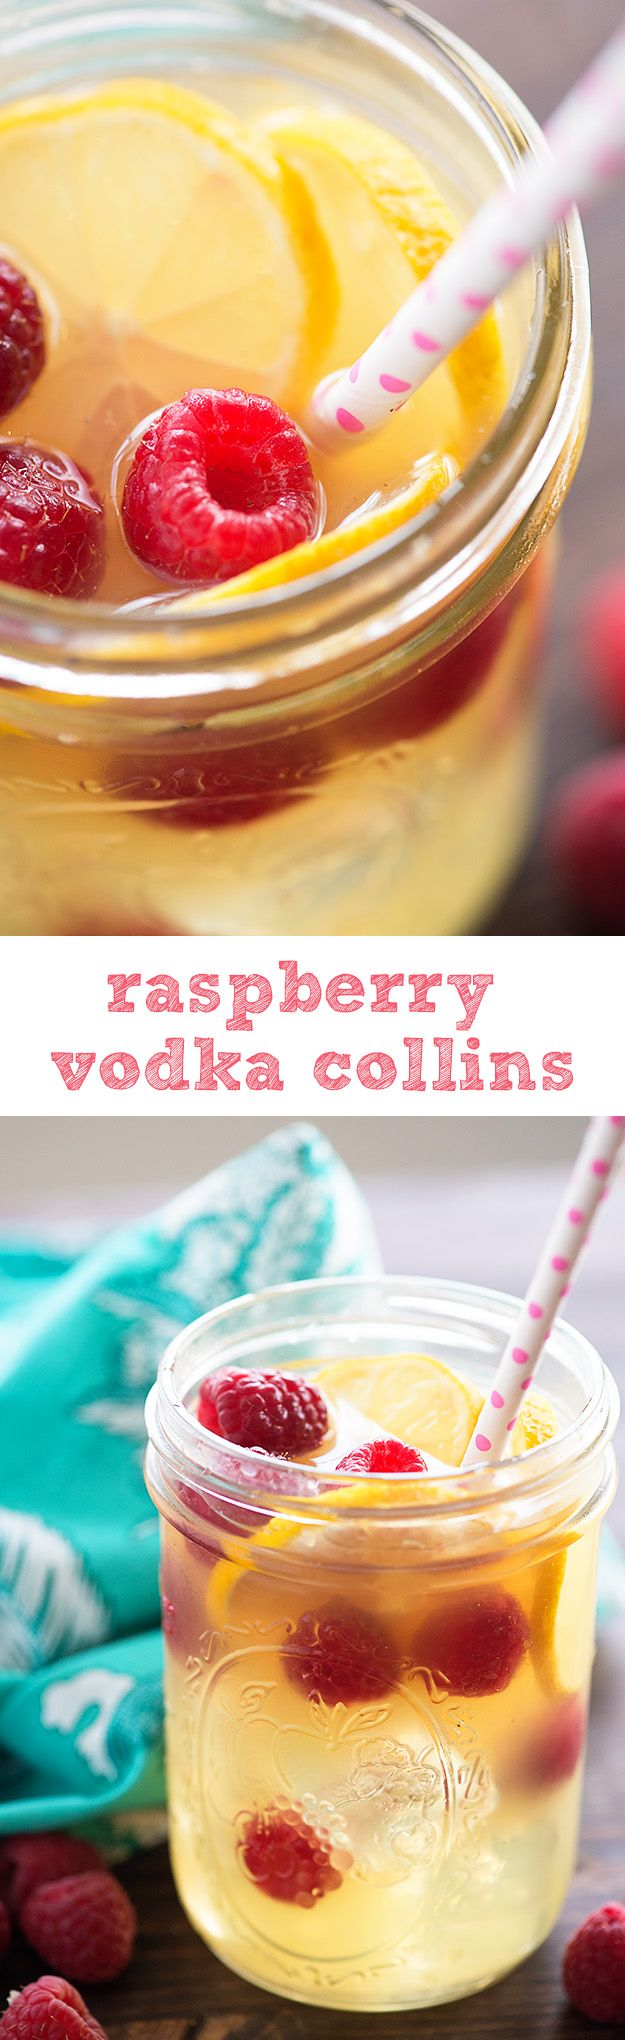 So refreshing! We love this fruity alcoholic drink for sipping by the pool - raspberry lemonade with vodka!